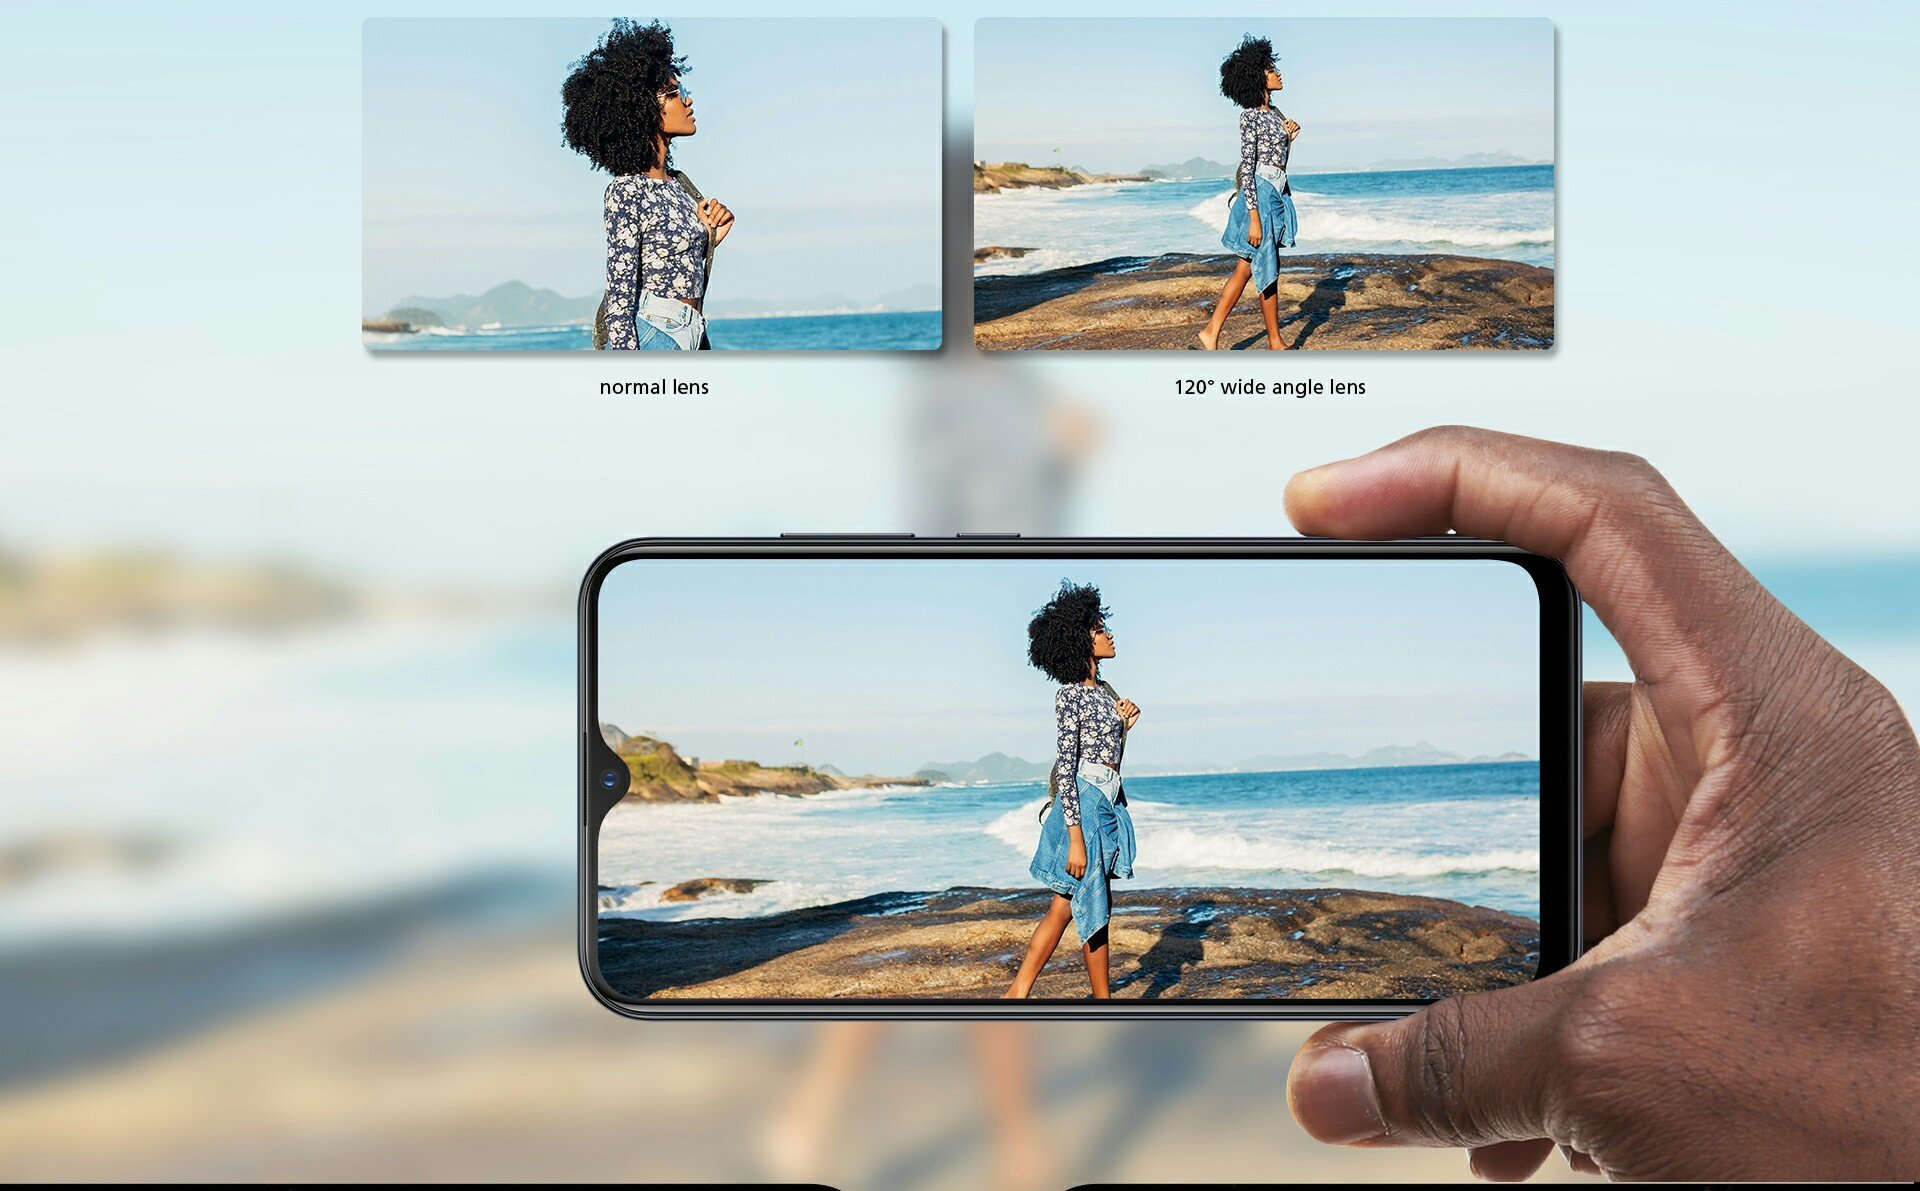 Infinix hot S4 ultra wide camera lens performance sample